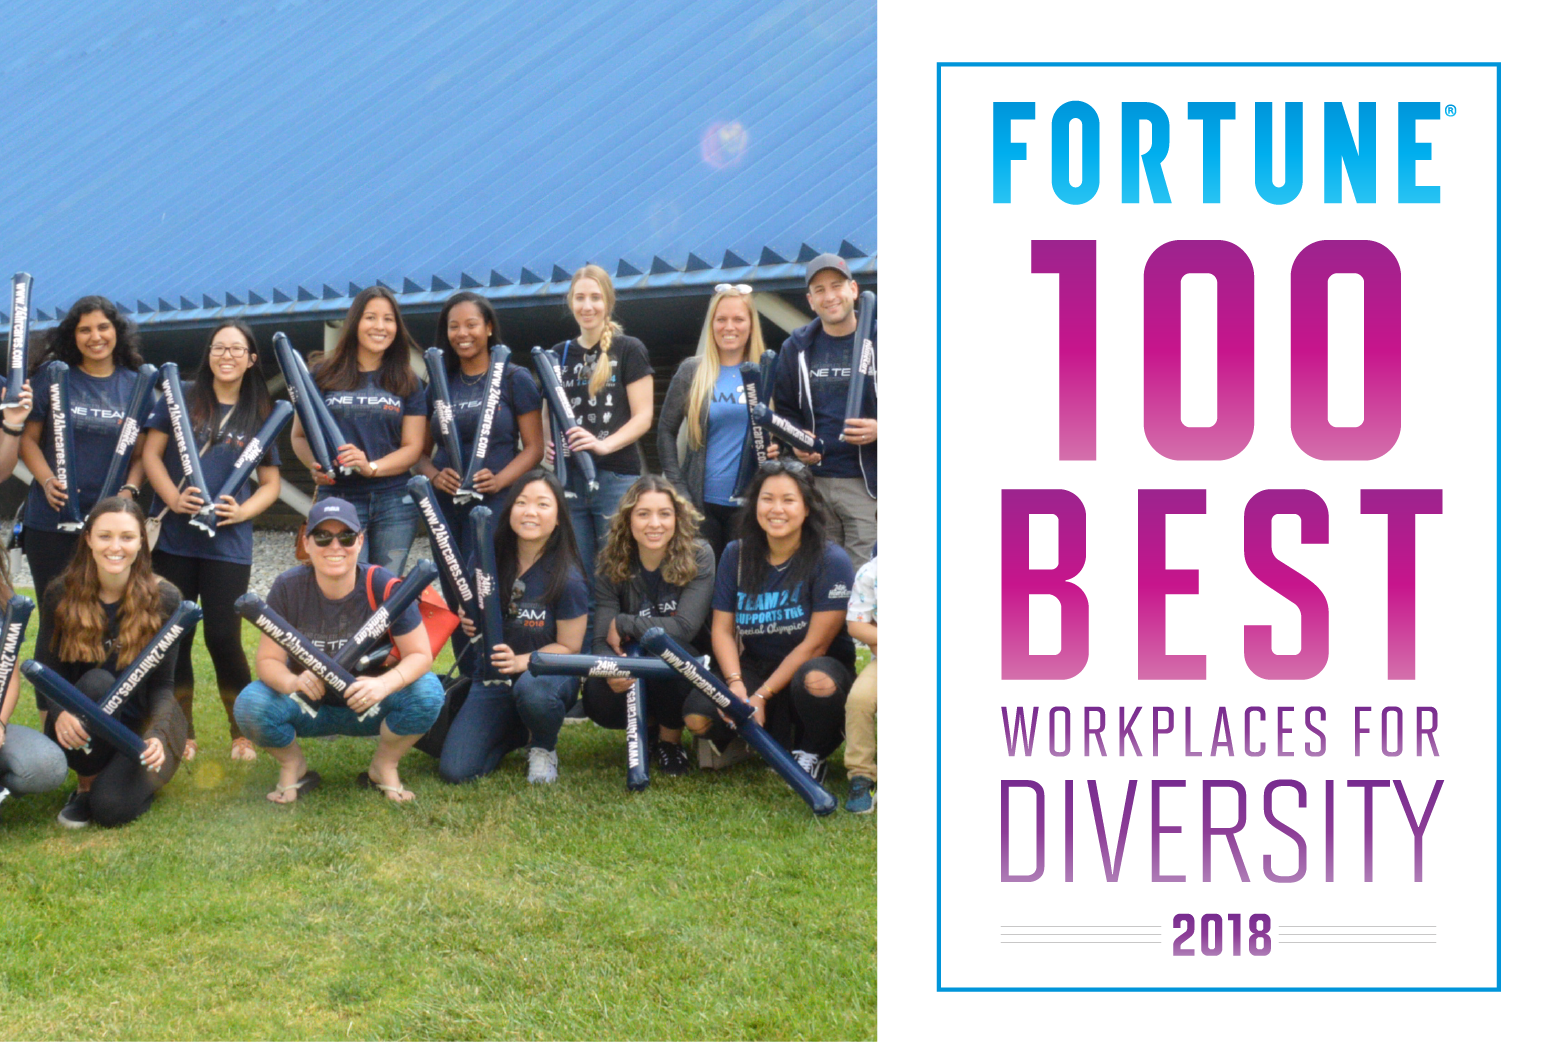 24Hr HomeCare Named One of the 2018 Best Workplaces for Diversity by Great Place to Work® and FORTUNE